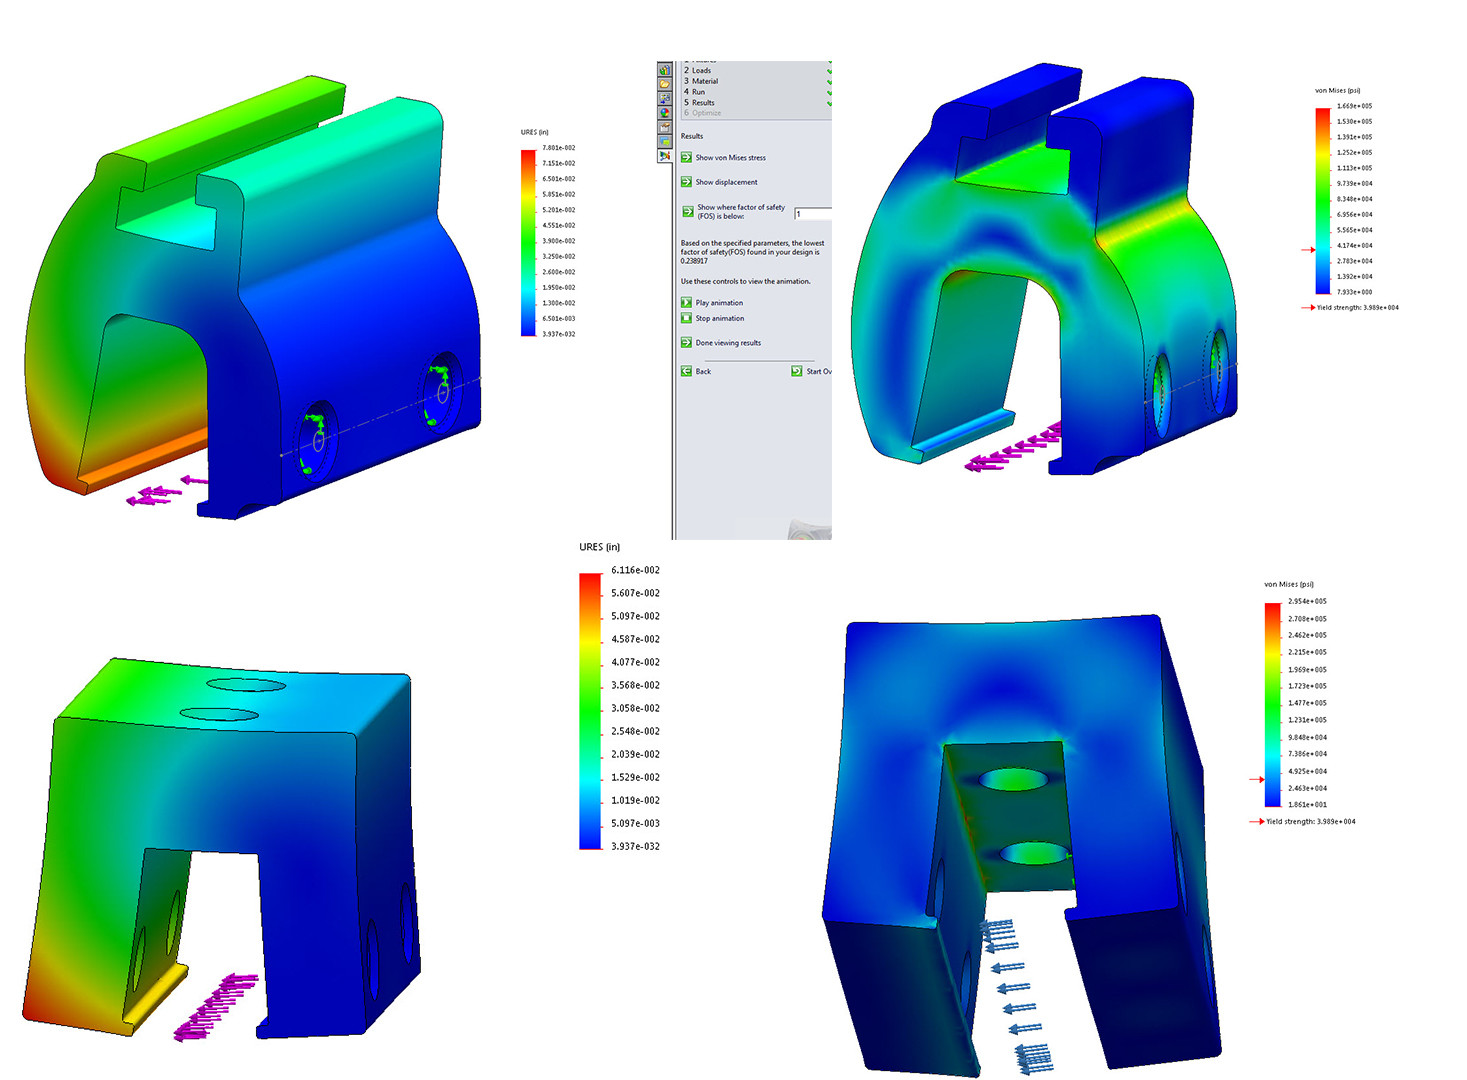 I frequently used basic simulations to check the new design against the original design and find weak points.